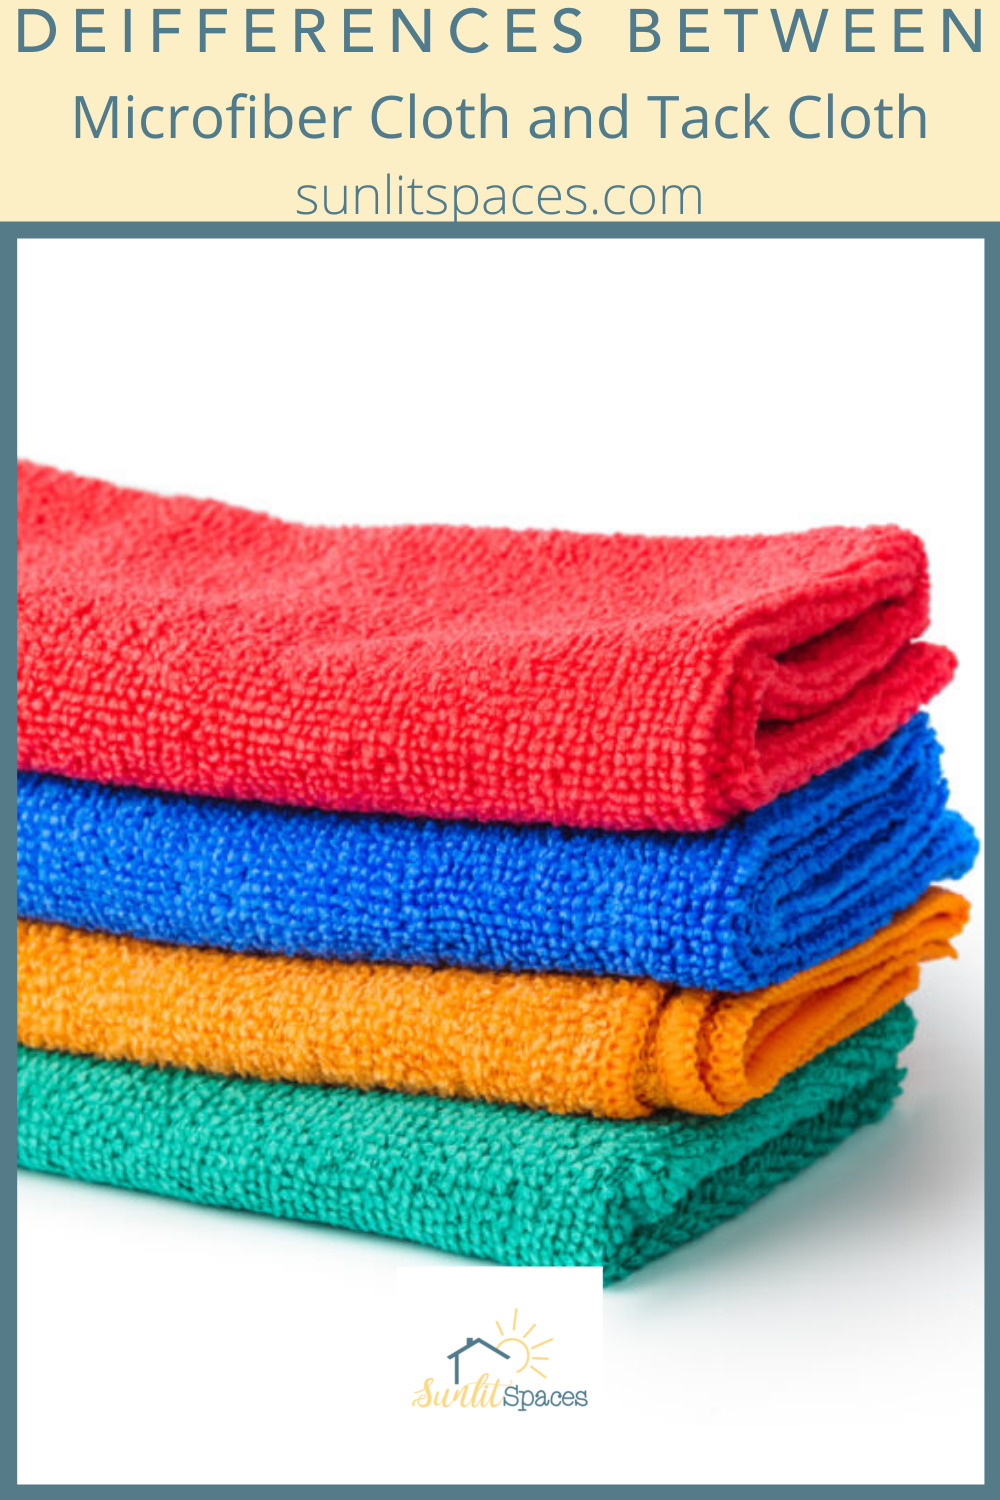 Sunlitspaces.com has all you need to know to create a perfect, personalized space. Know what kind of cleaning surface to use the next time you get started on household chores. Learn the differences between tack cloth and microfiber now!